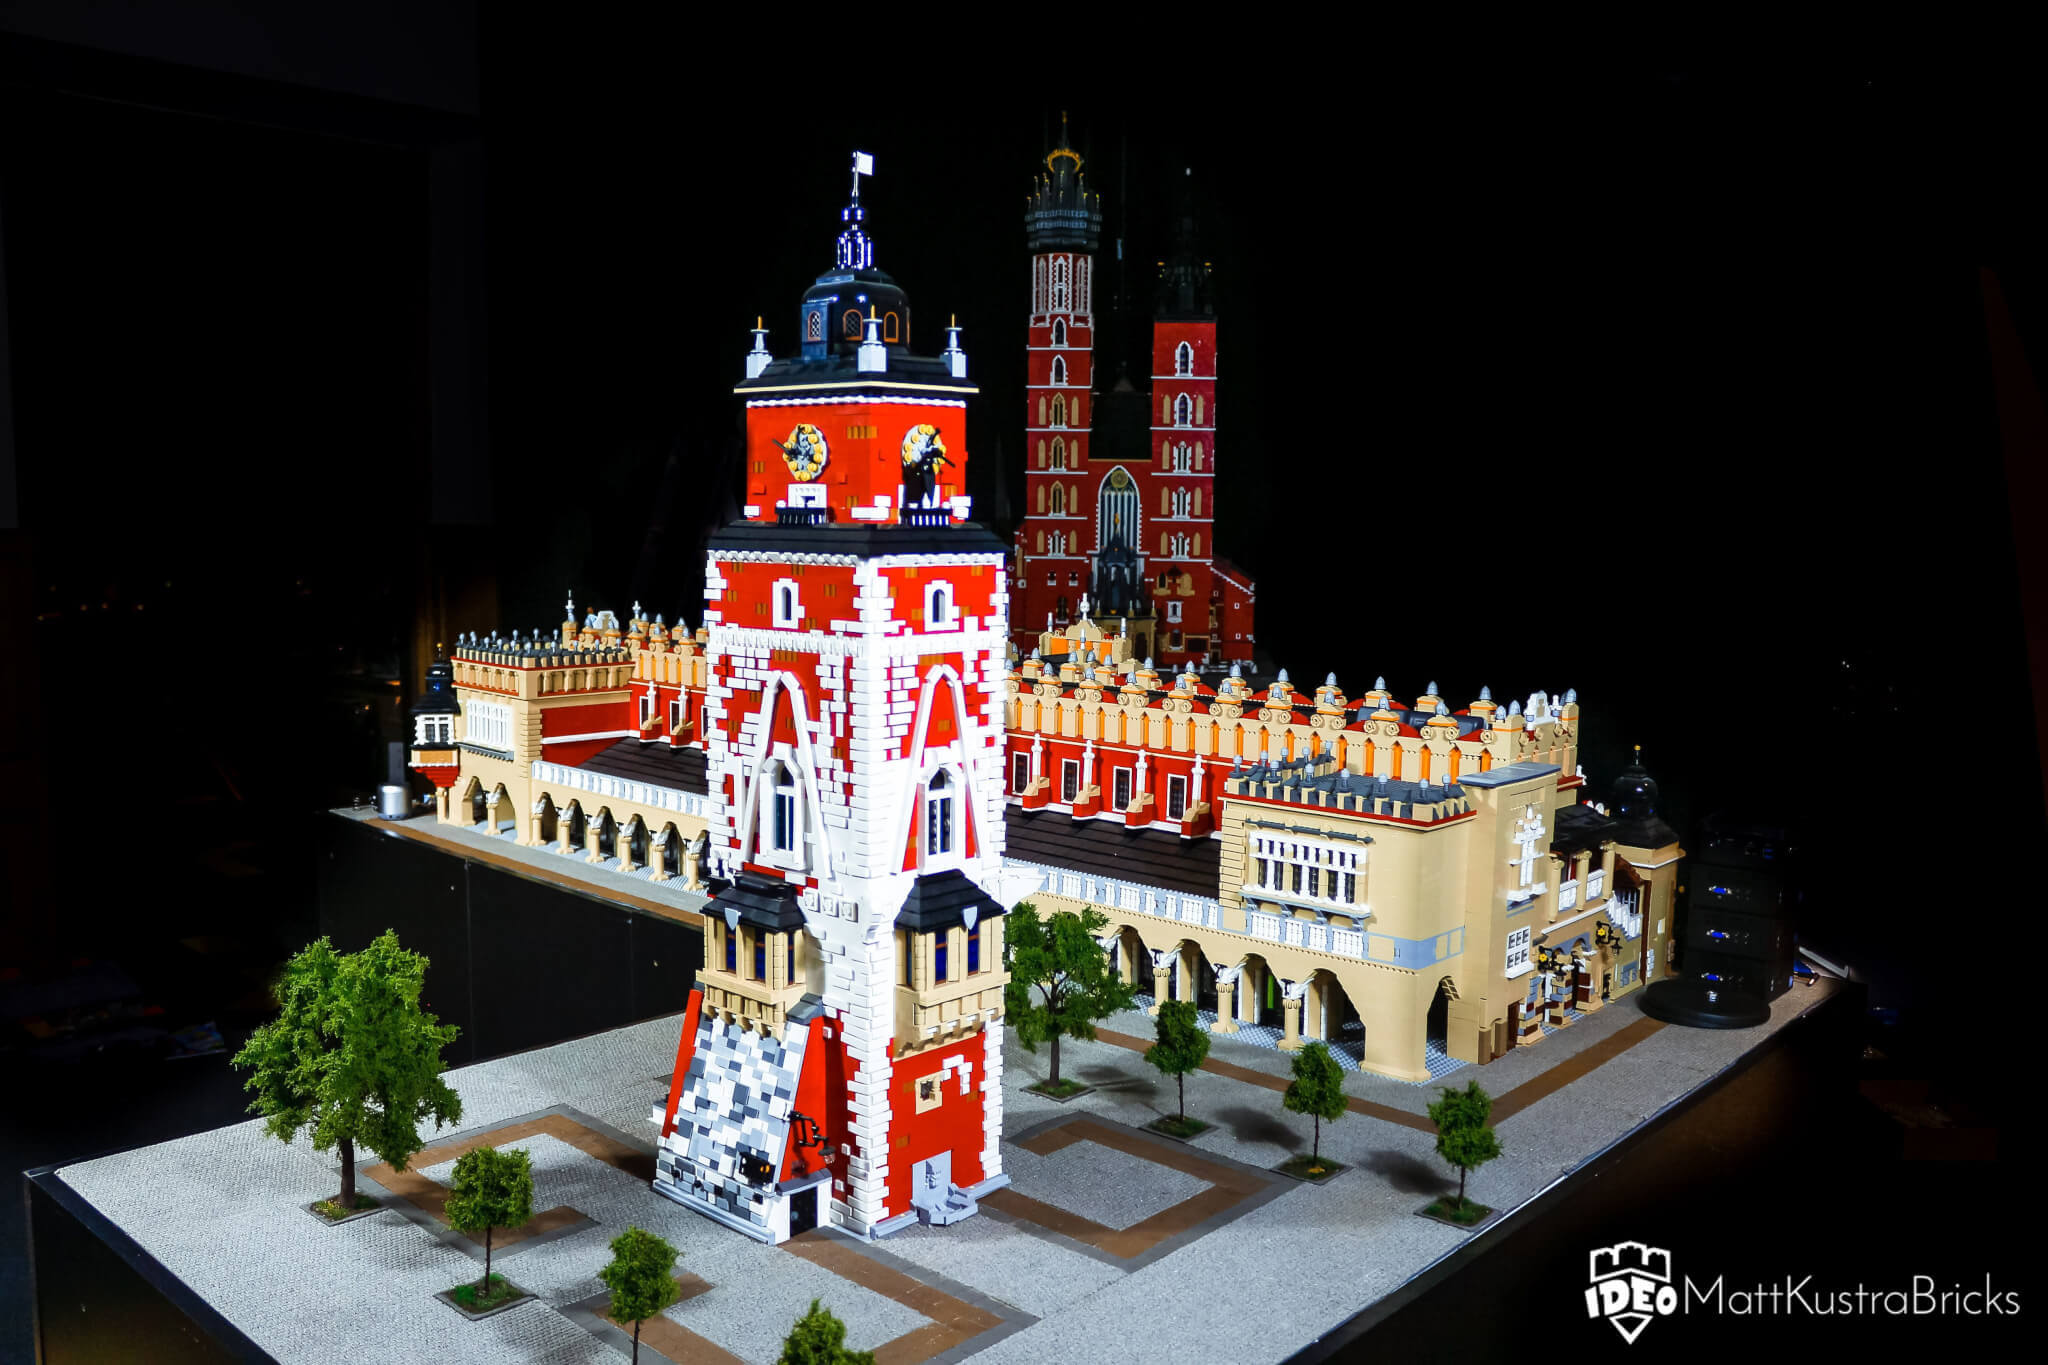 huge-lego-sets-on-lego-exhibition-in-krakow-old-town-Matt-Kustra-for-Historyland-1.jpg